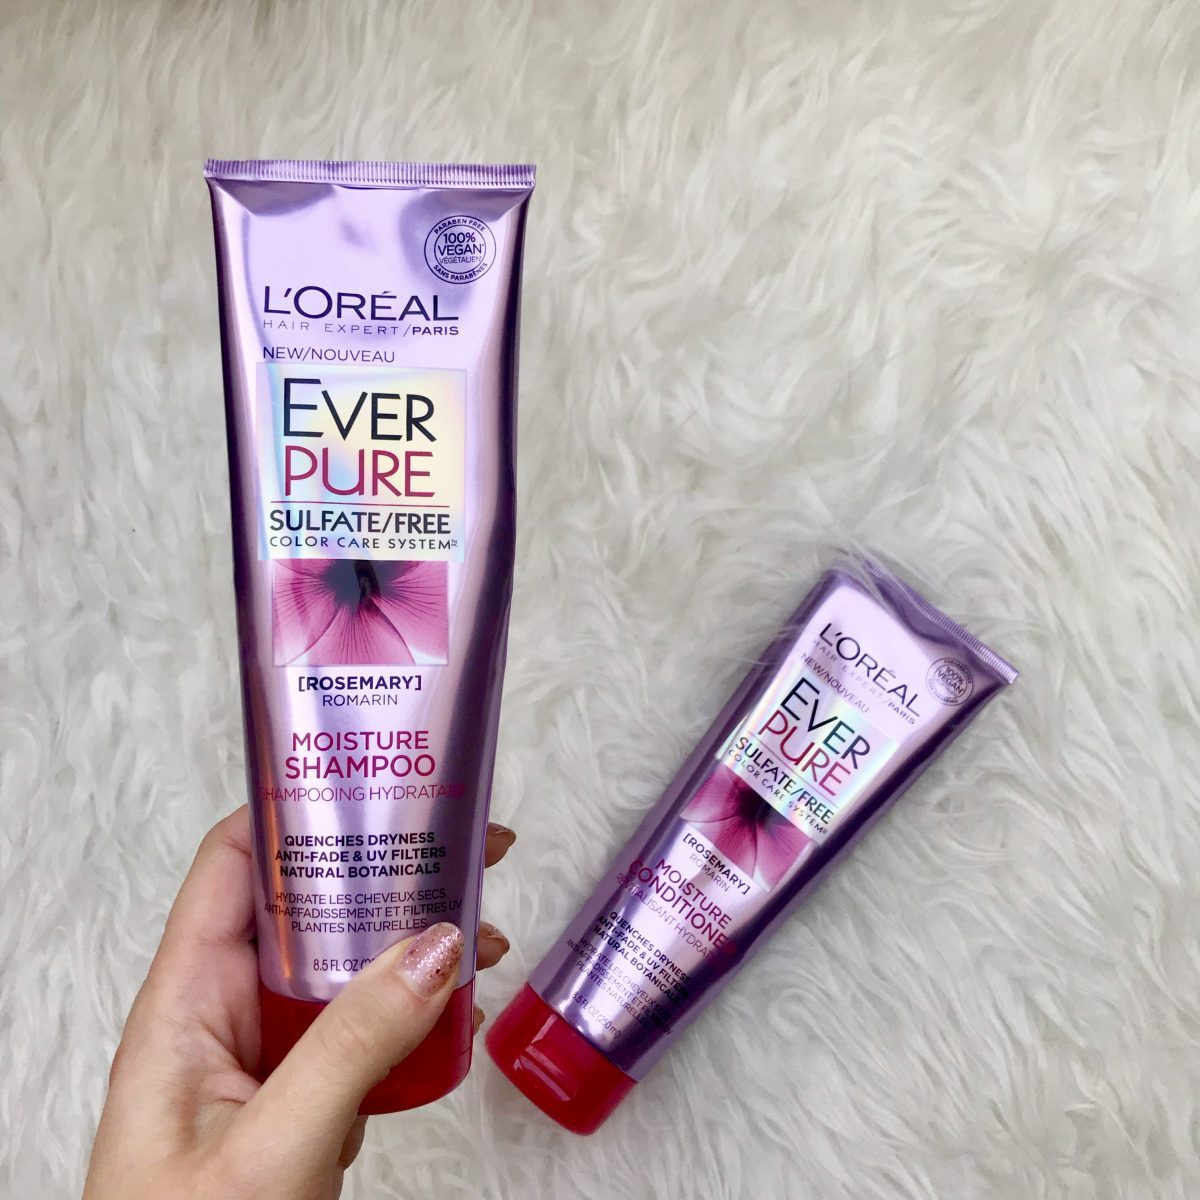 Better Homes & Gardens Beauty Box: L'Oreal EverPure Moisture Haircare